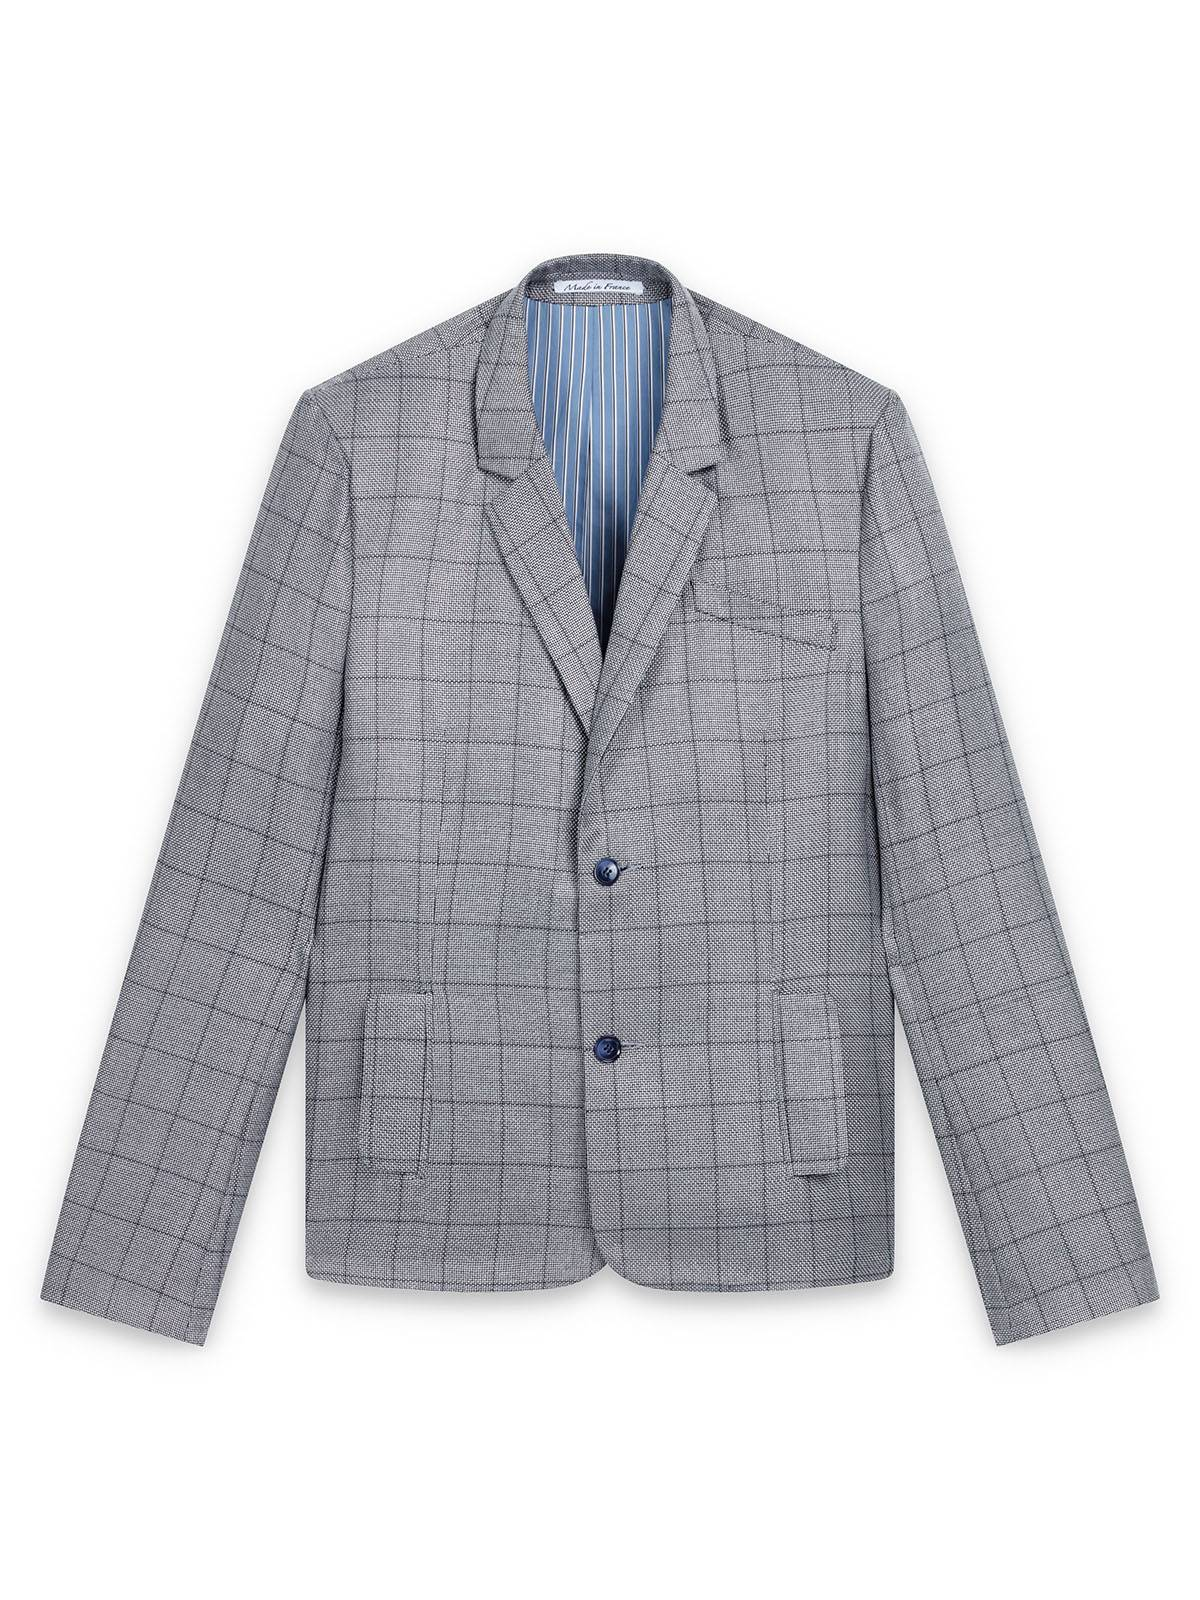 Le blazer homme must-have